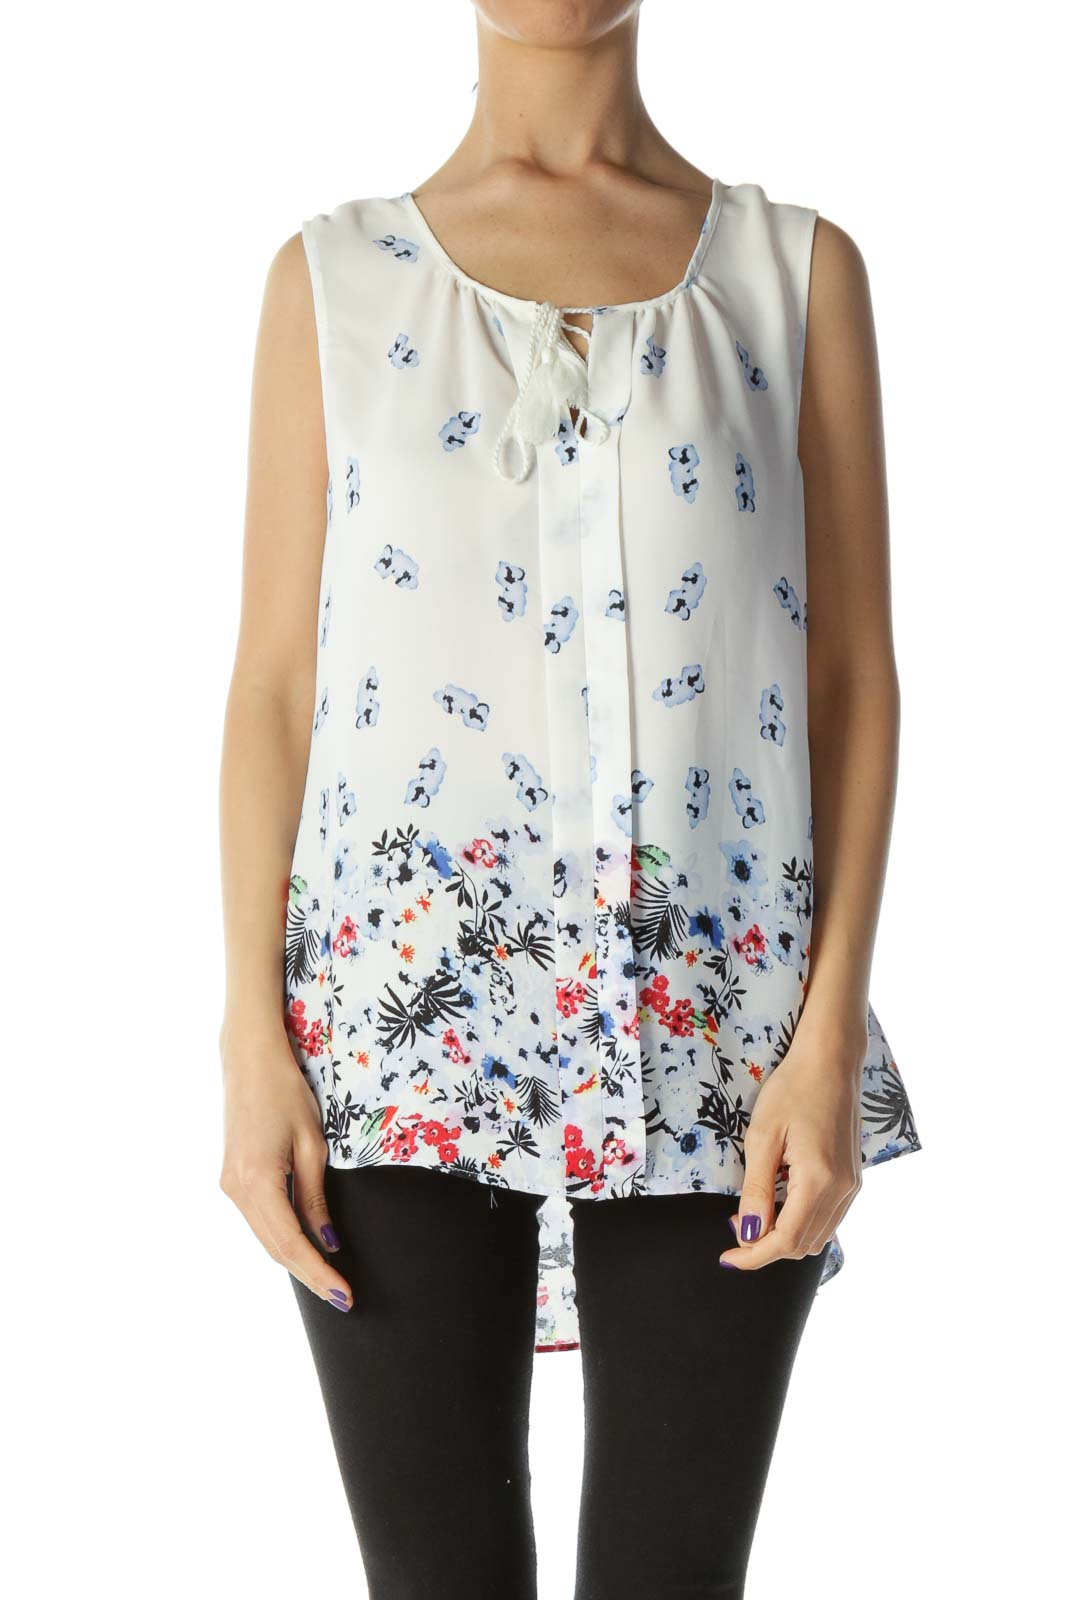 White & Multicolored Floral Sleeveless Blouse with Neck Tassel